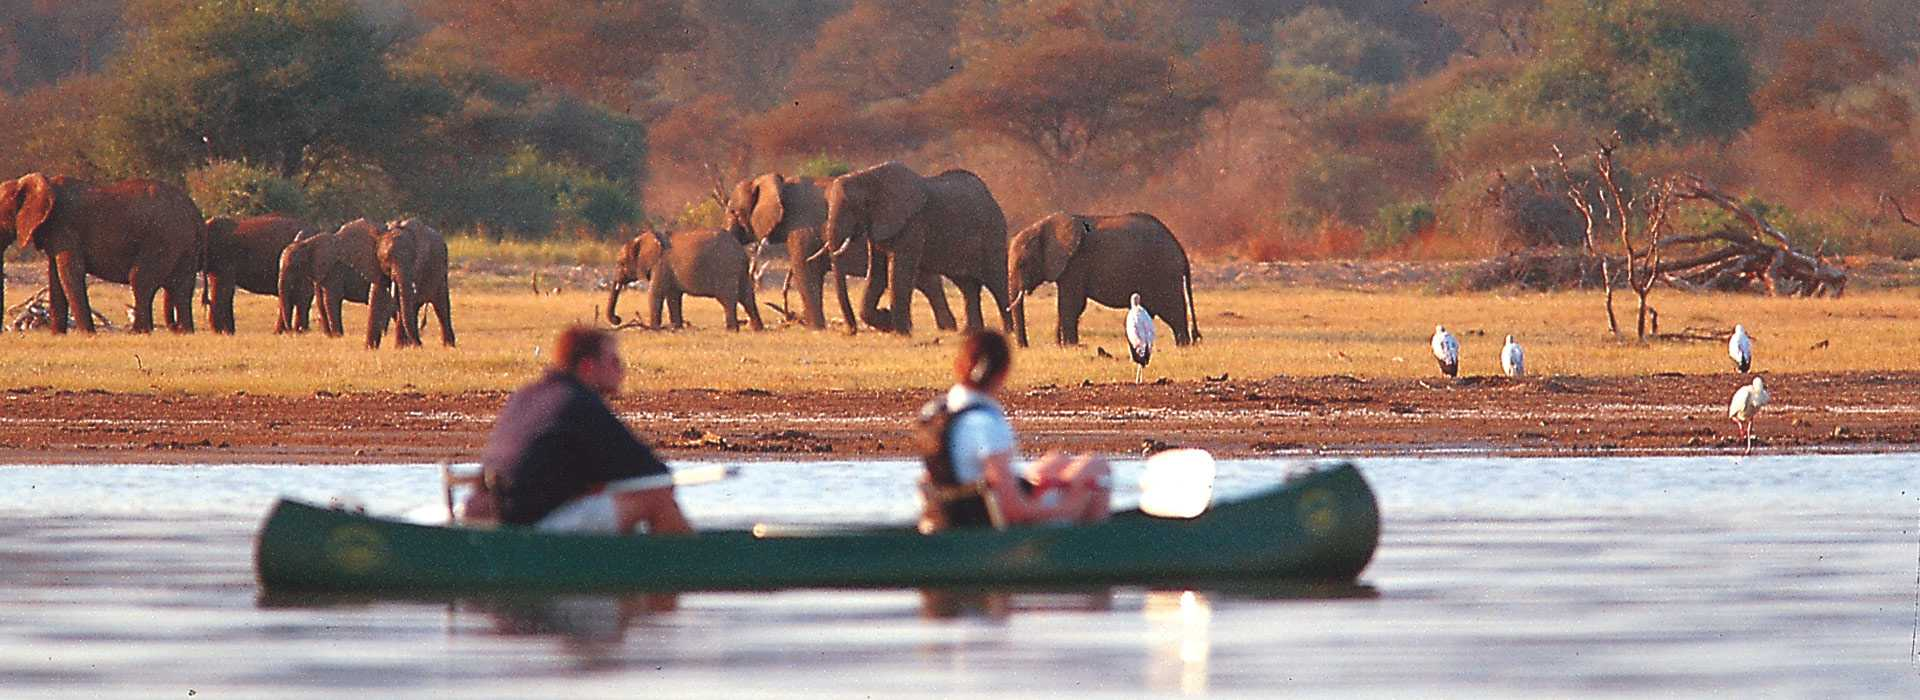 Canoeing Alongside A Herd Of Elephants